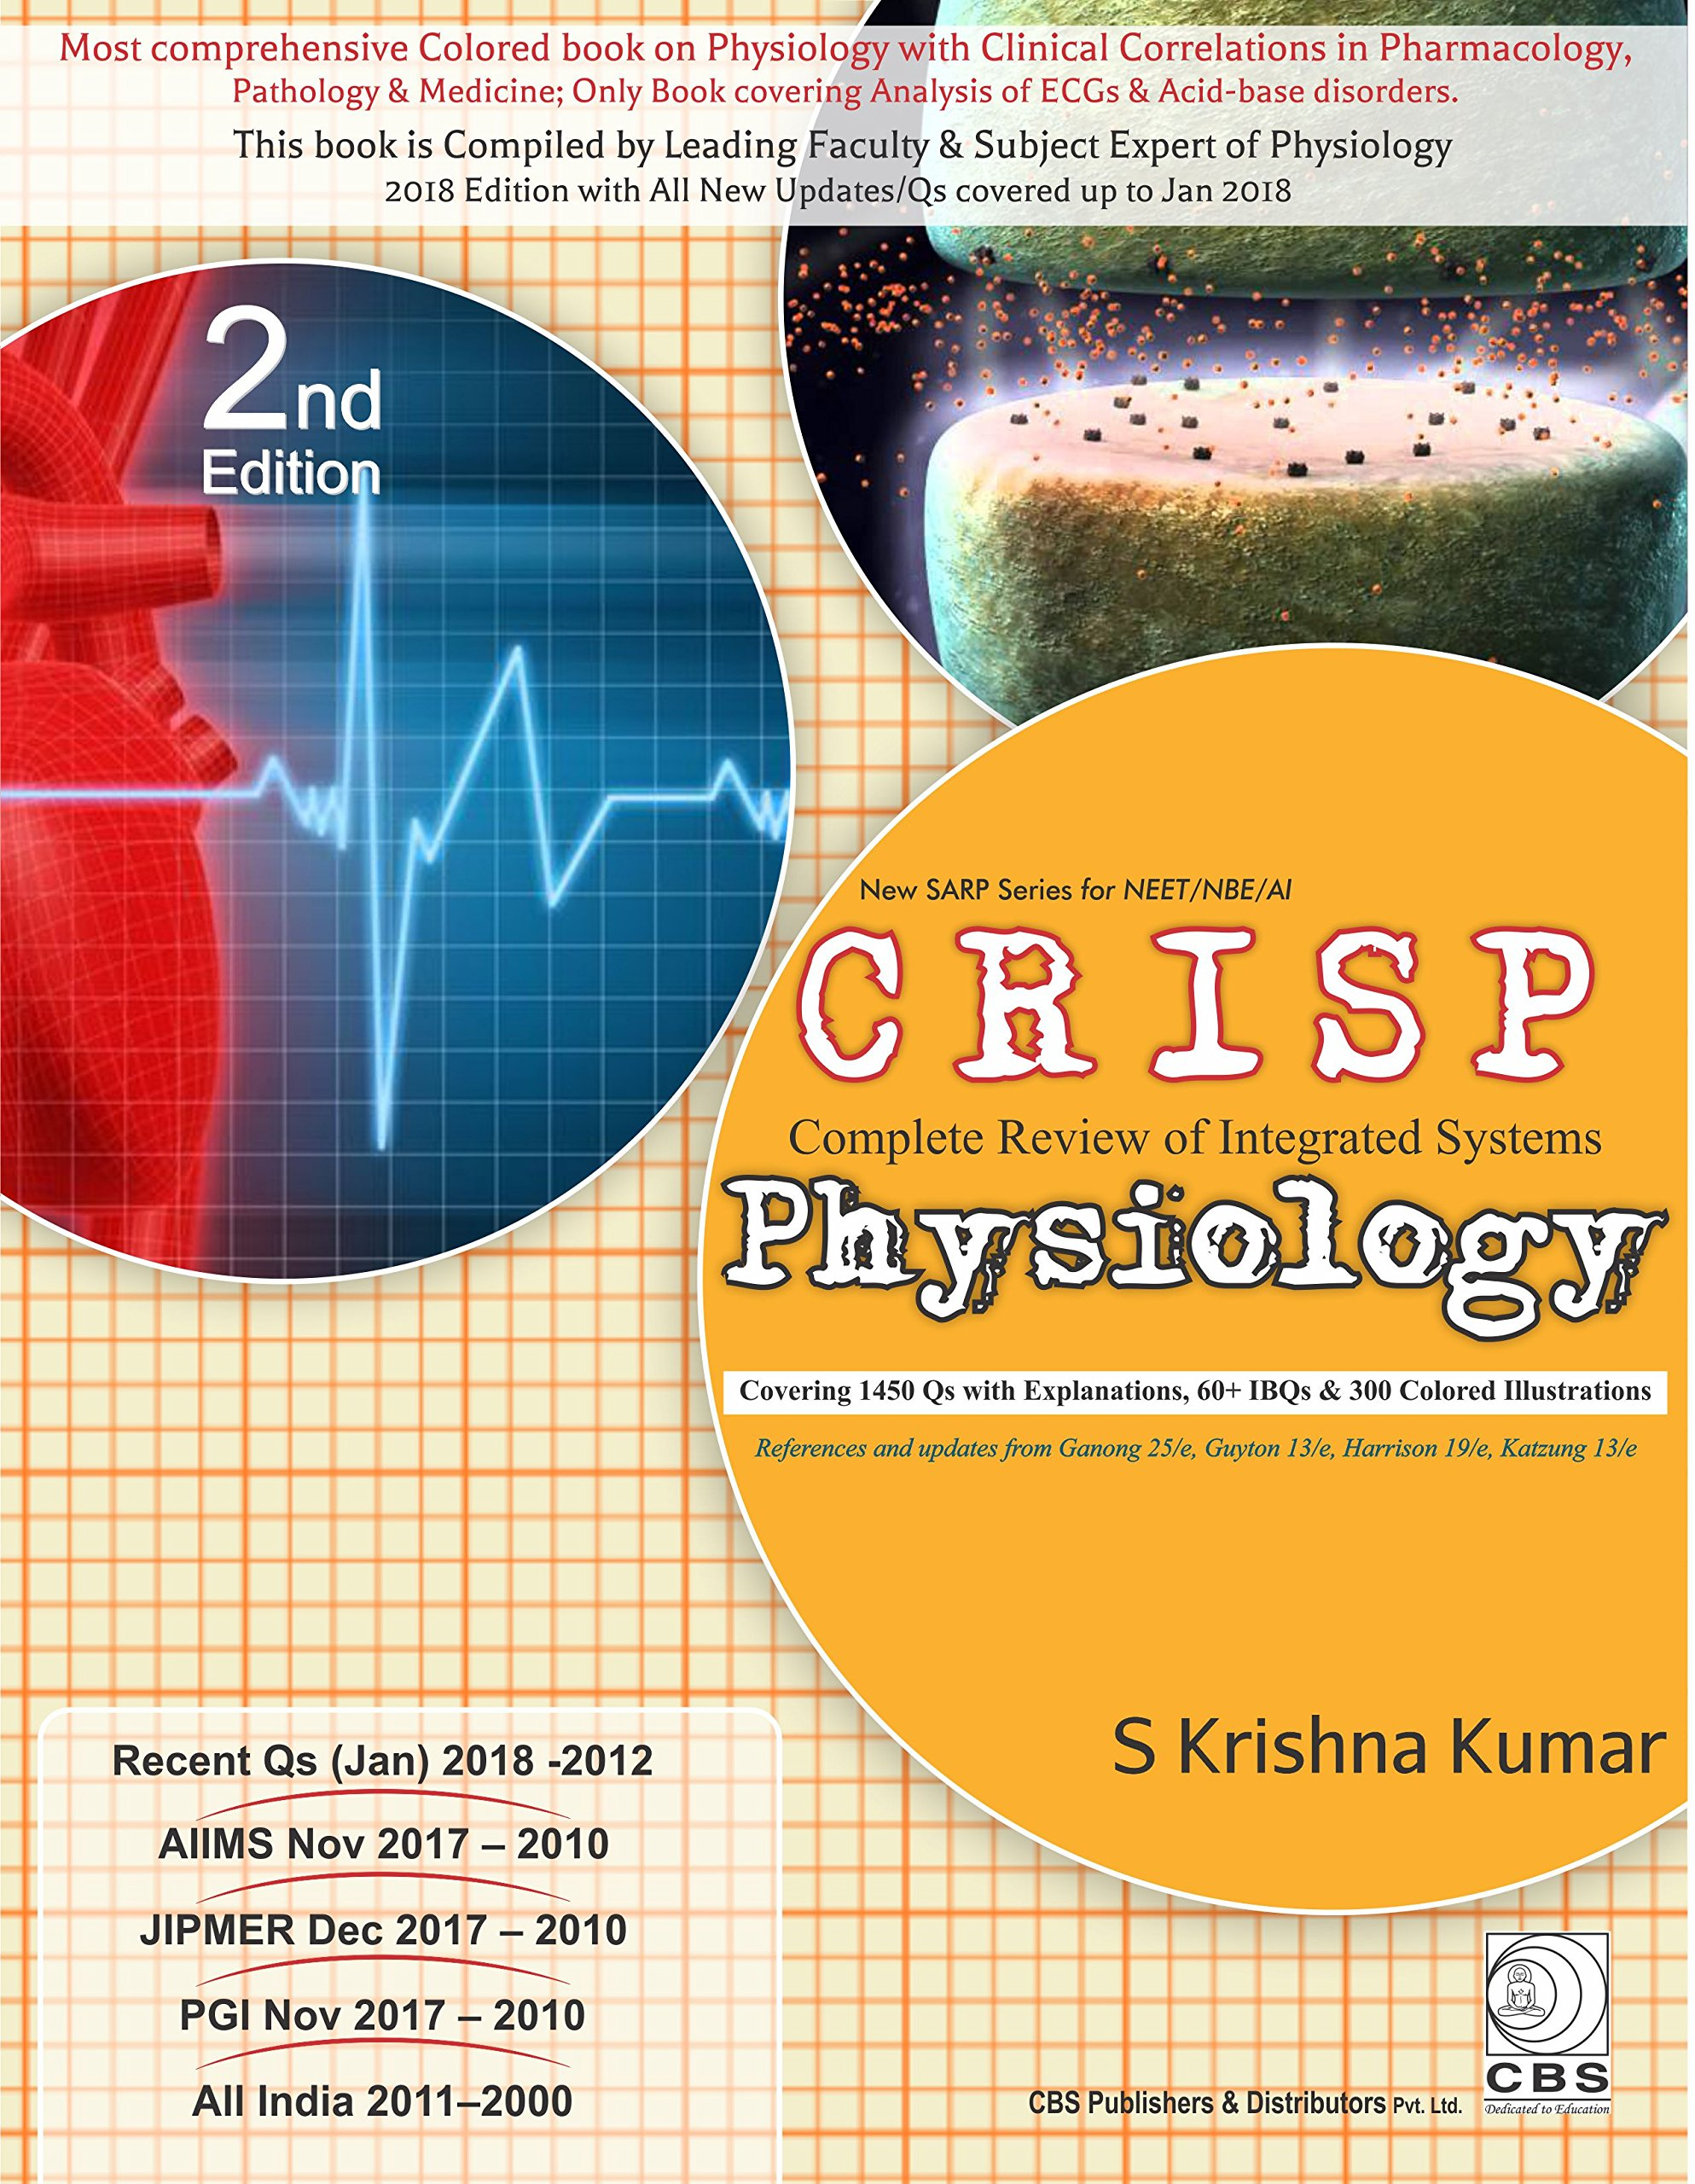 Buy Complete Review of Integrated Systems (CRISP)-Physiology